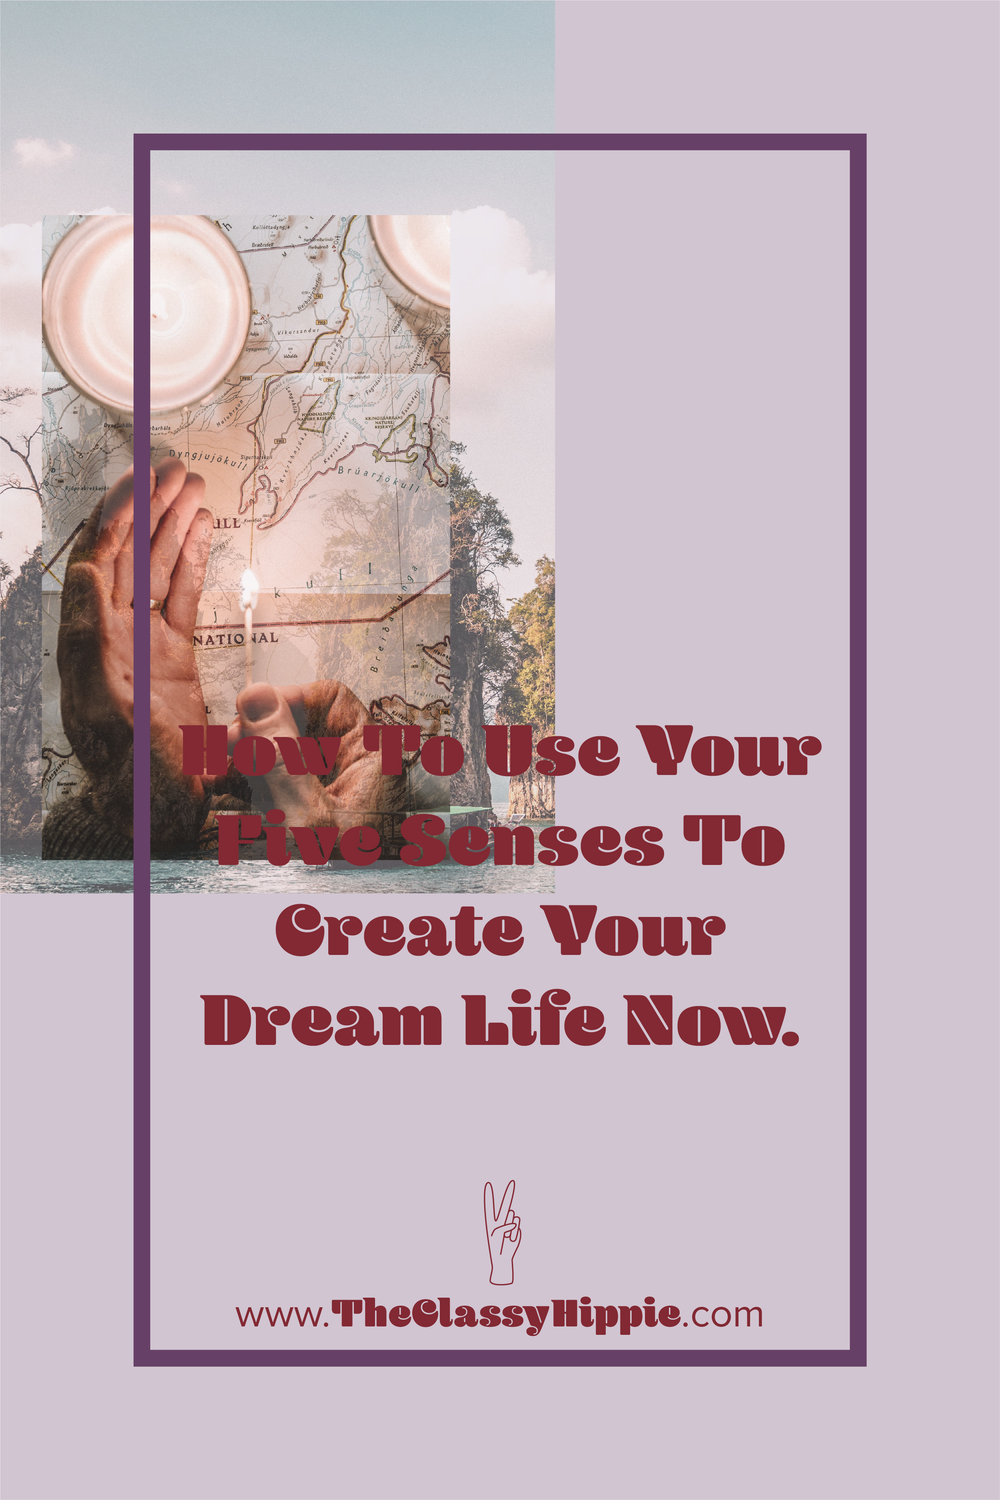 A lot of people operate from the limiting belief that they can't live out their dream life NOW given their current circumstances. BUT, what if I were to tell you that living your ultimate Dream Life is dependent upon you taking ACTION to create it NOW?! Learn how to get started by taking advantage of your five senses!